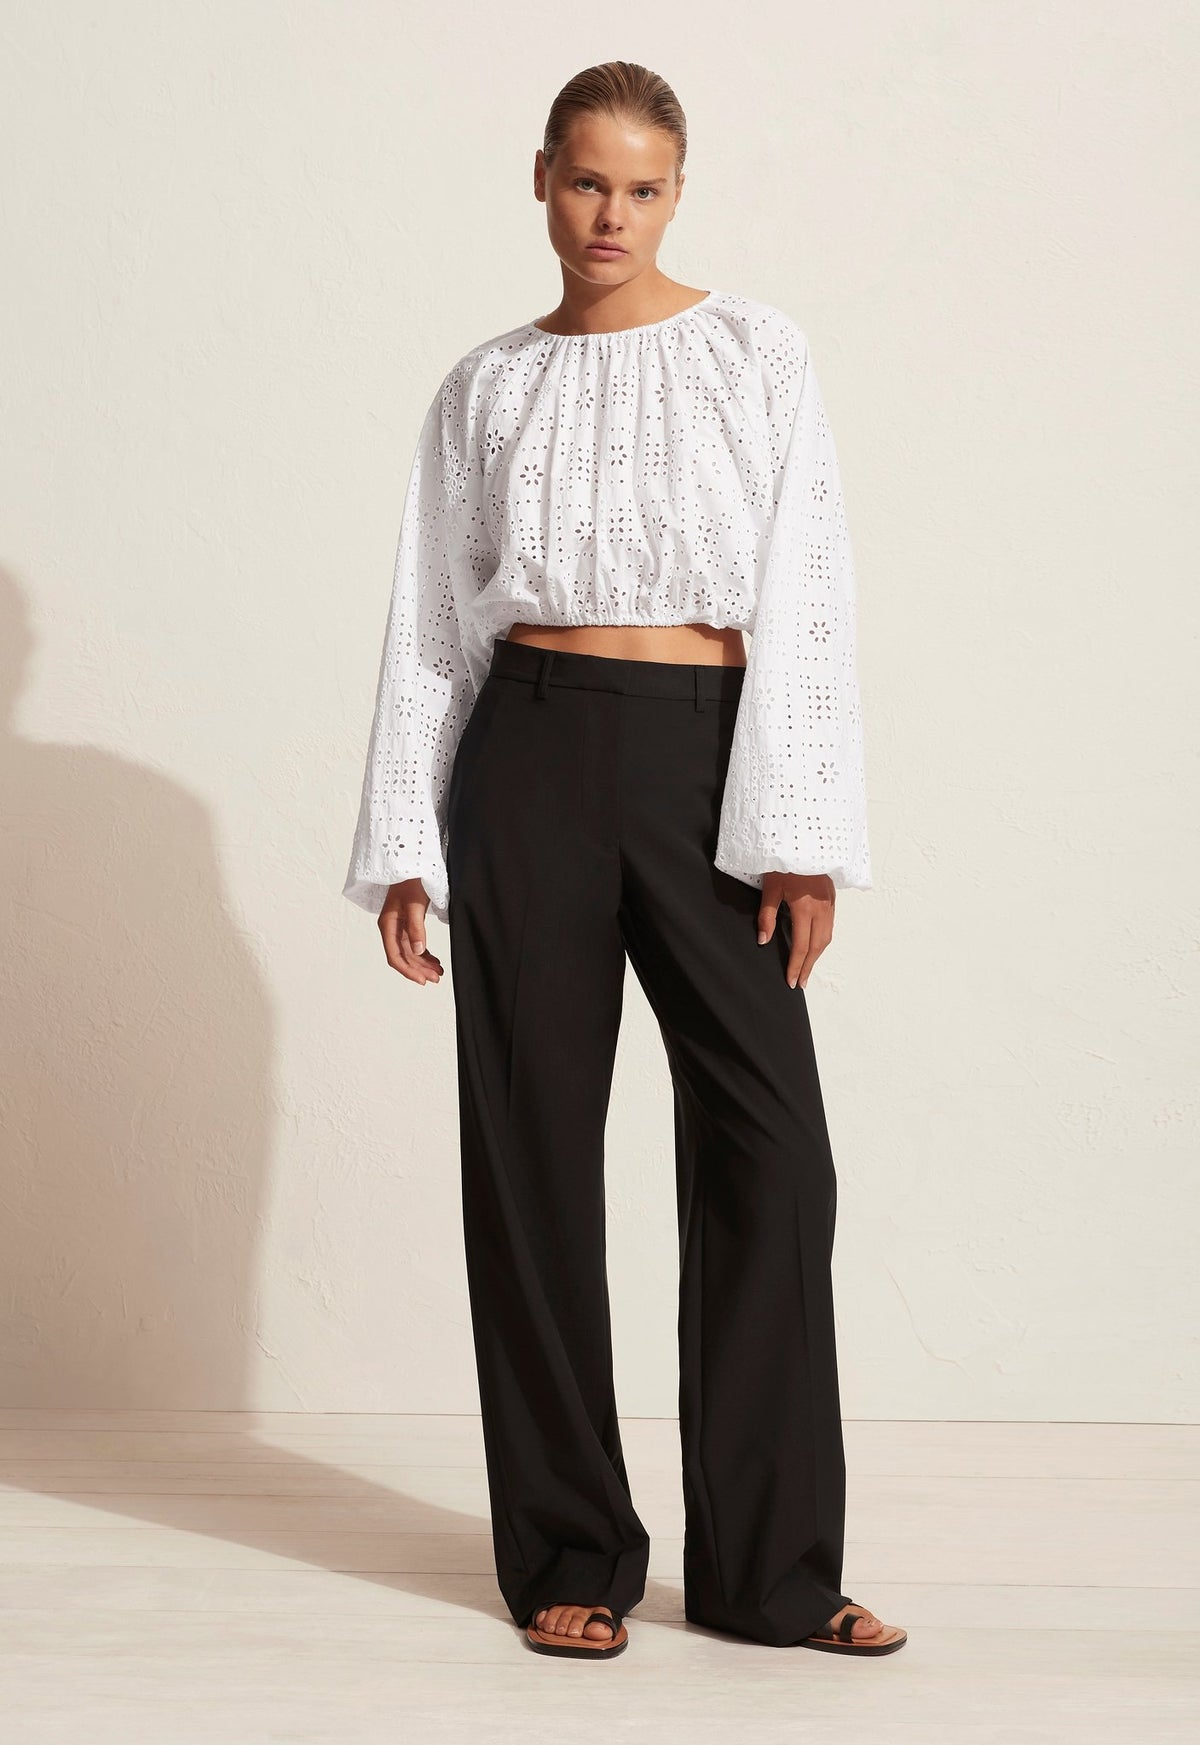 The Crochet Broderie Blouson Blouse